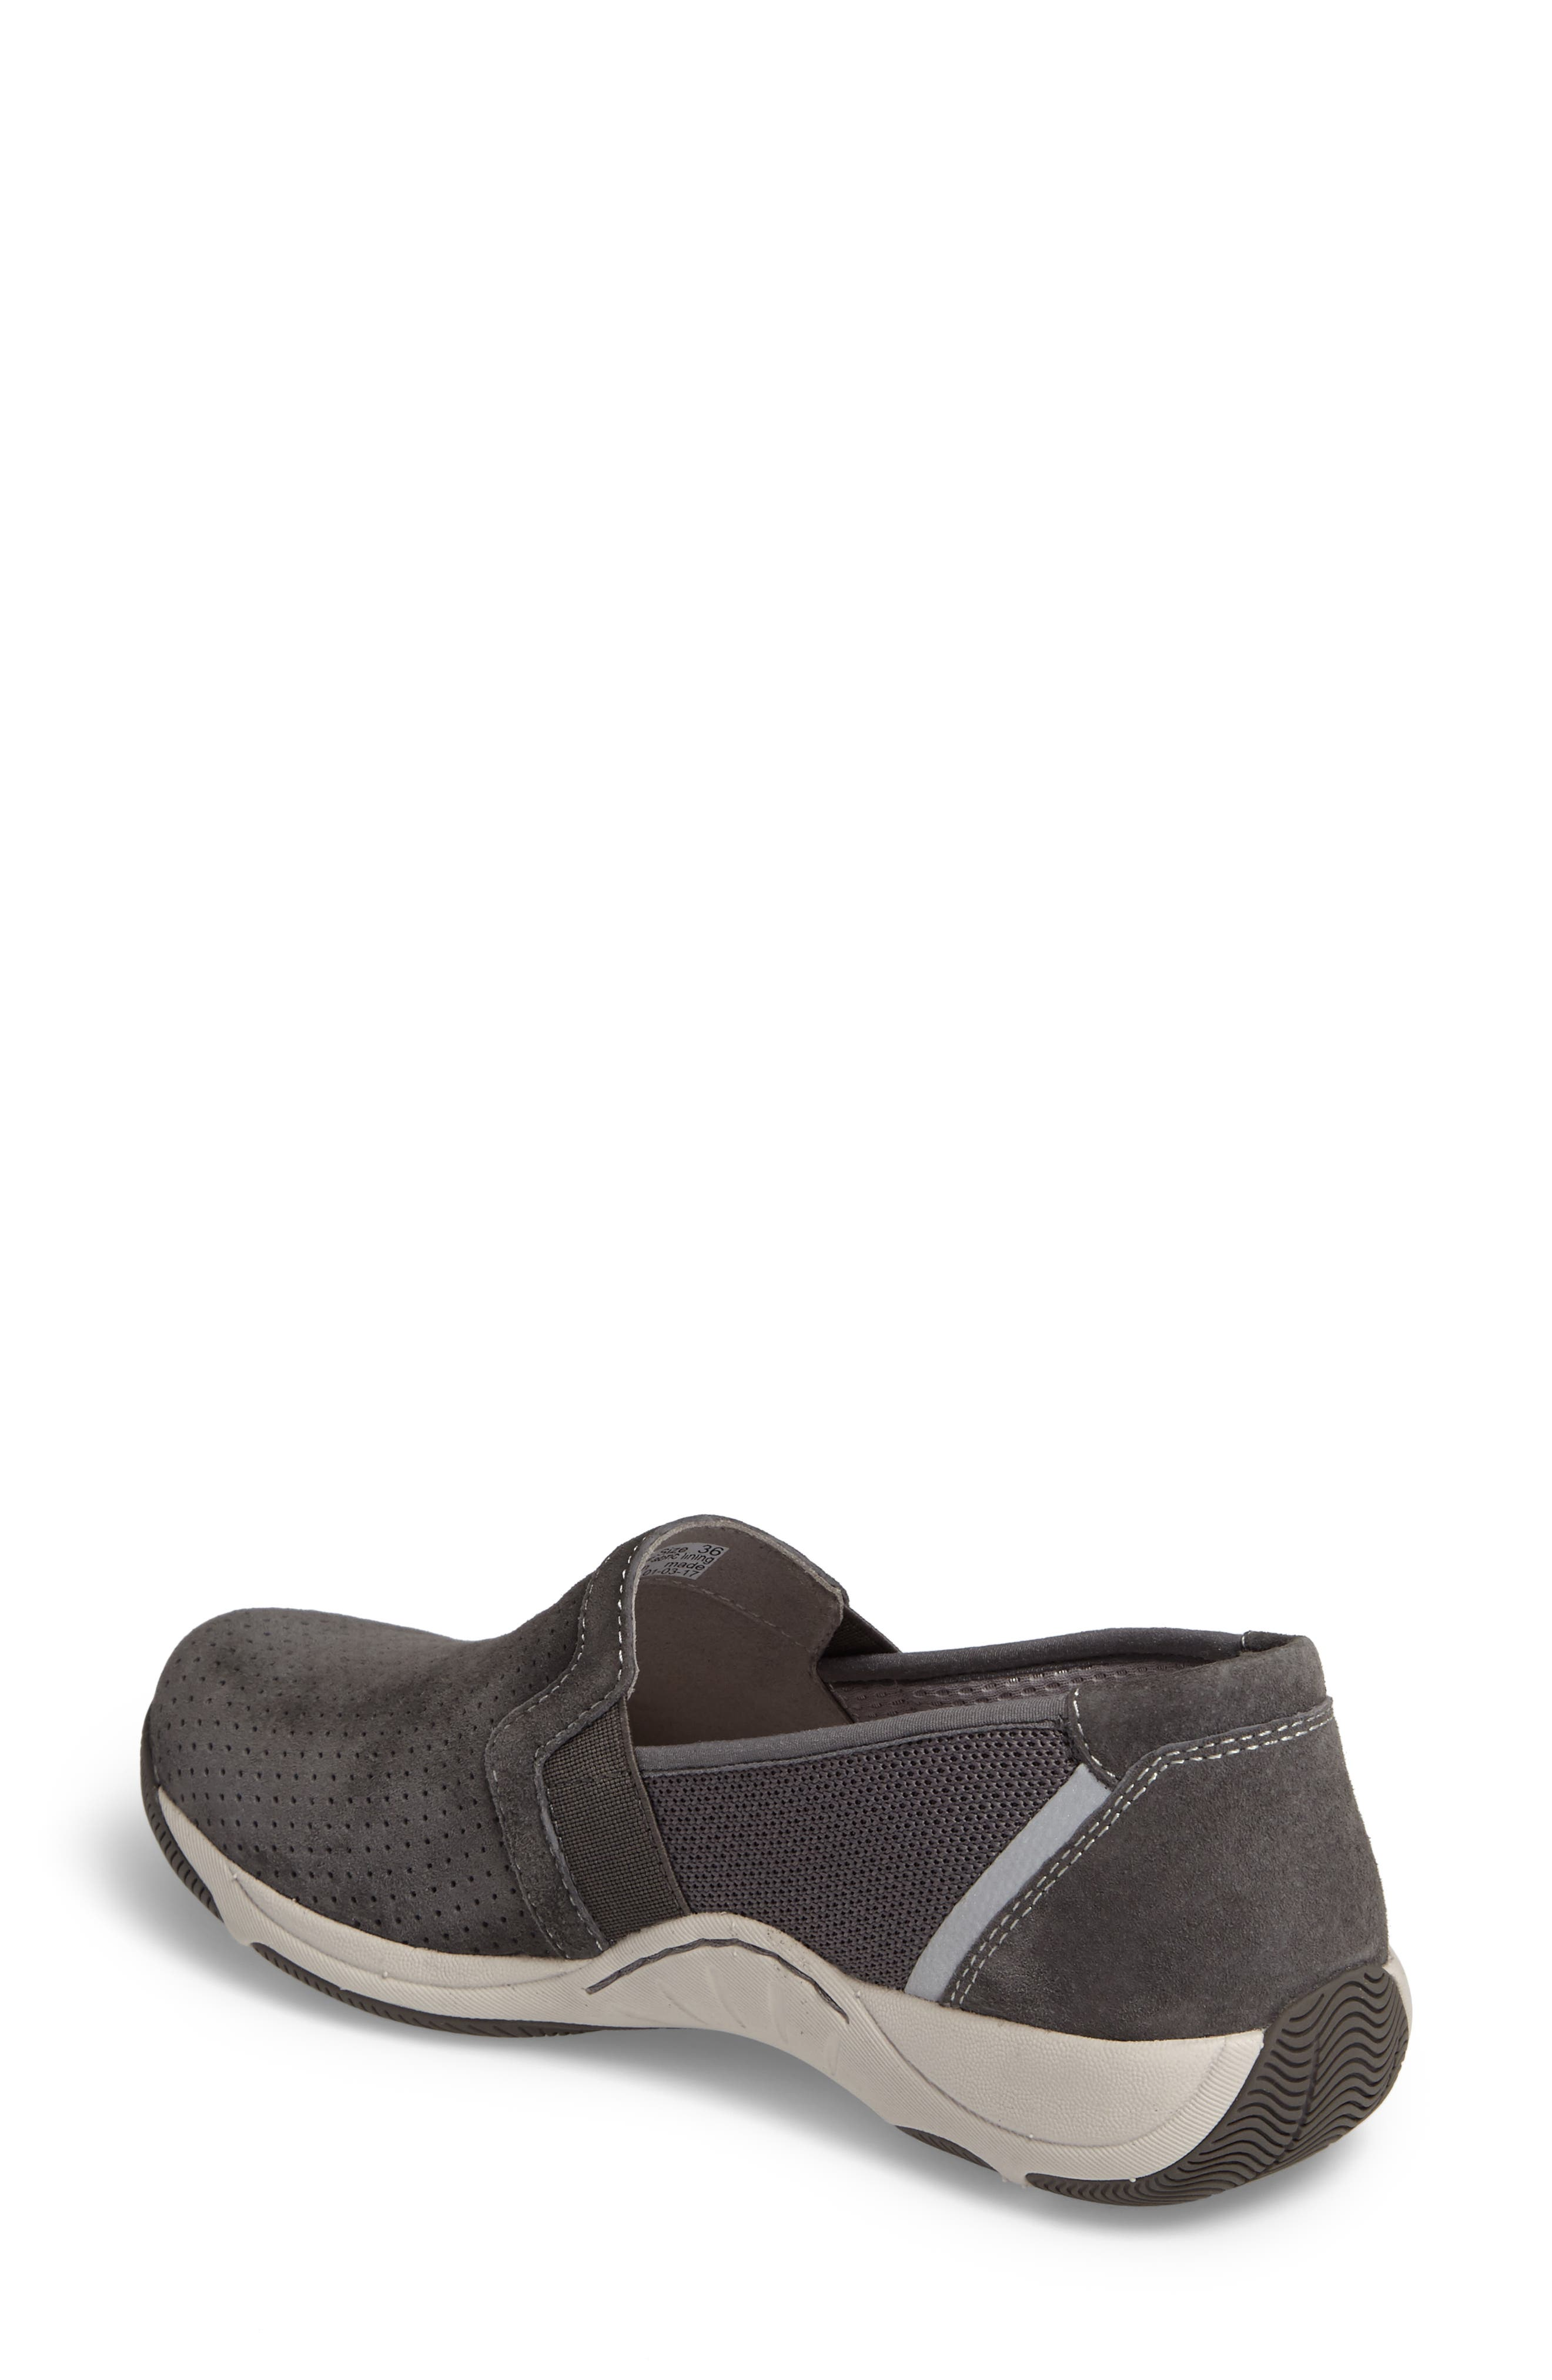 Halifax Collection Halle Slip-On Sneaker,                             Alternate thumbnail 5, color,